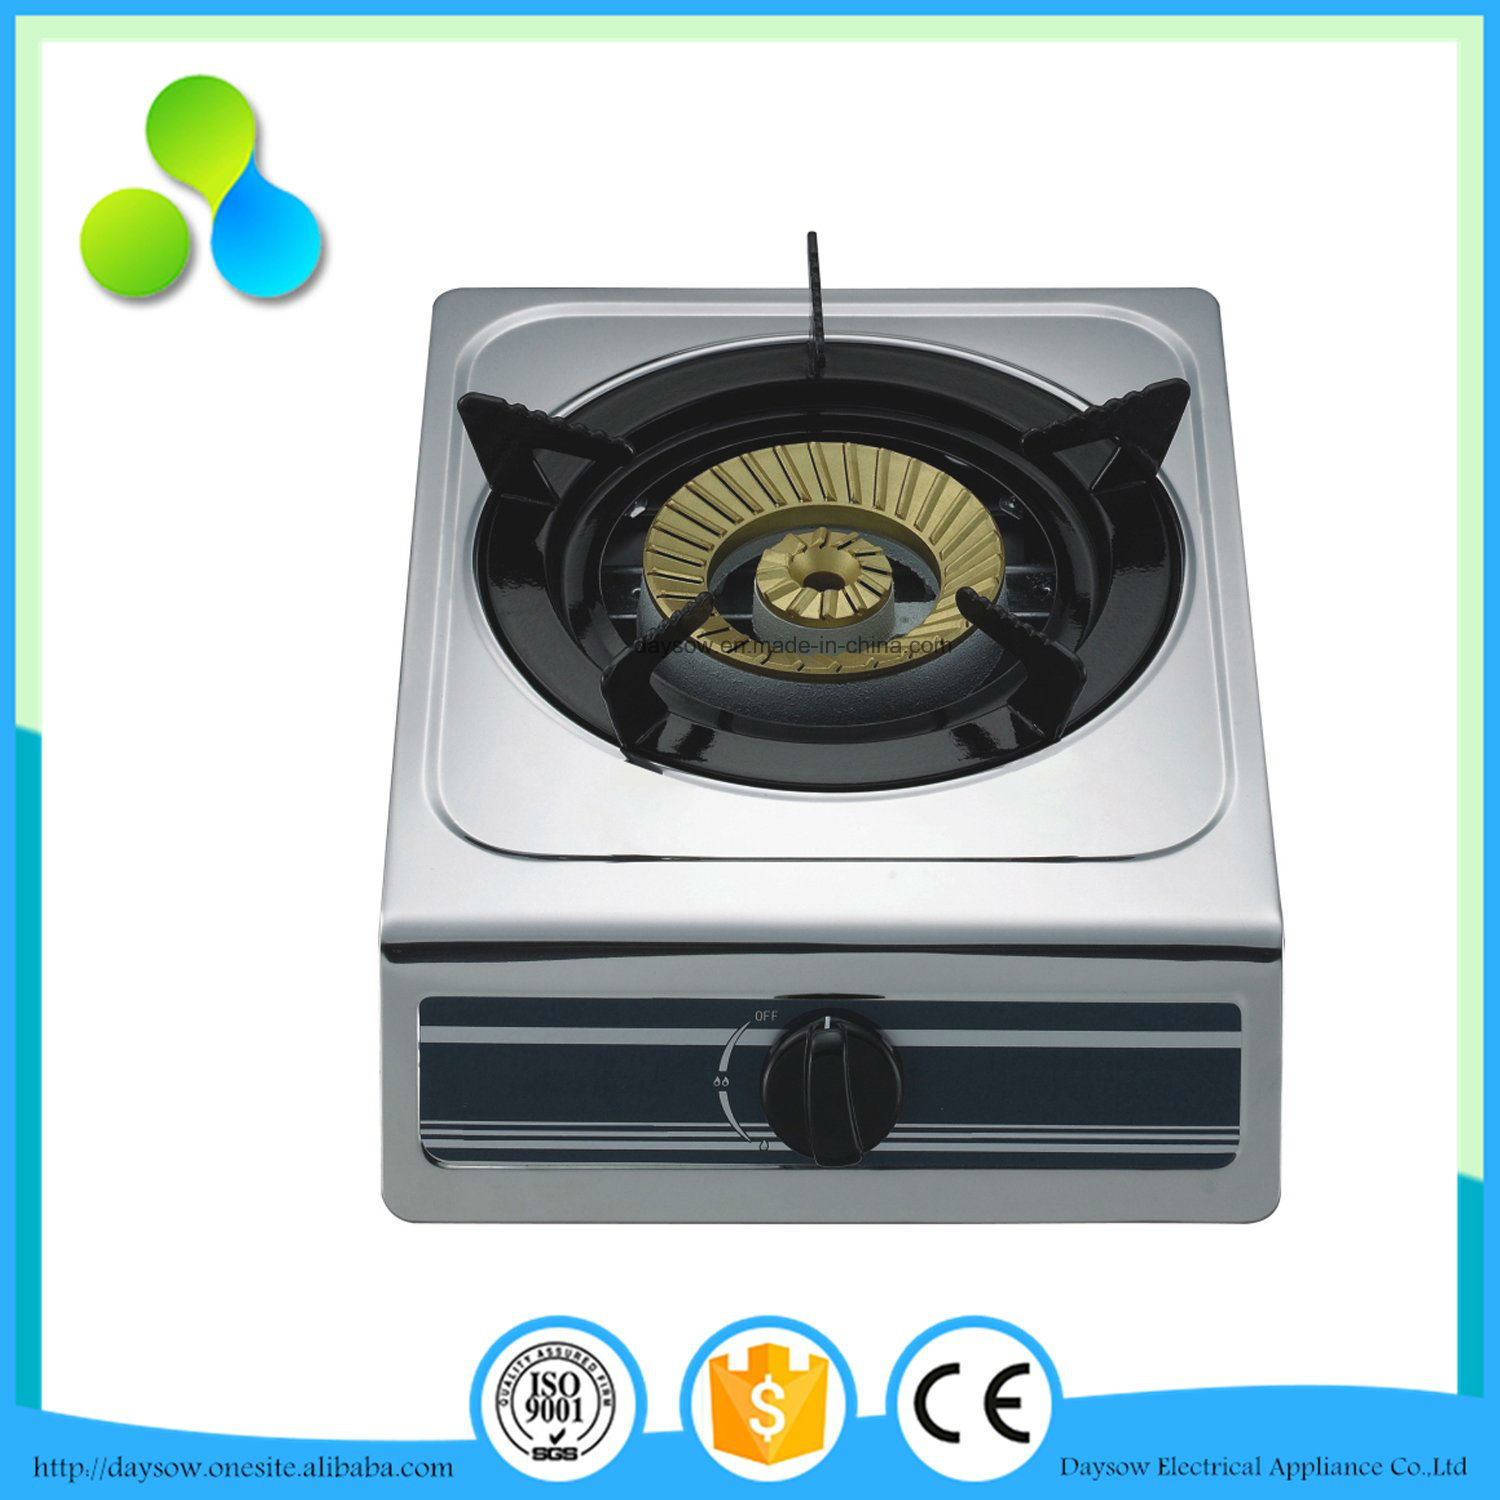 Manufacturers in China Induction Cooker with Gas Stove